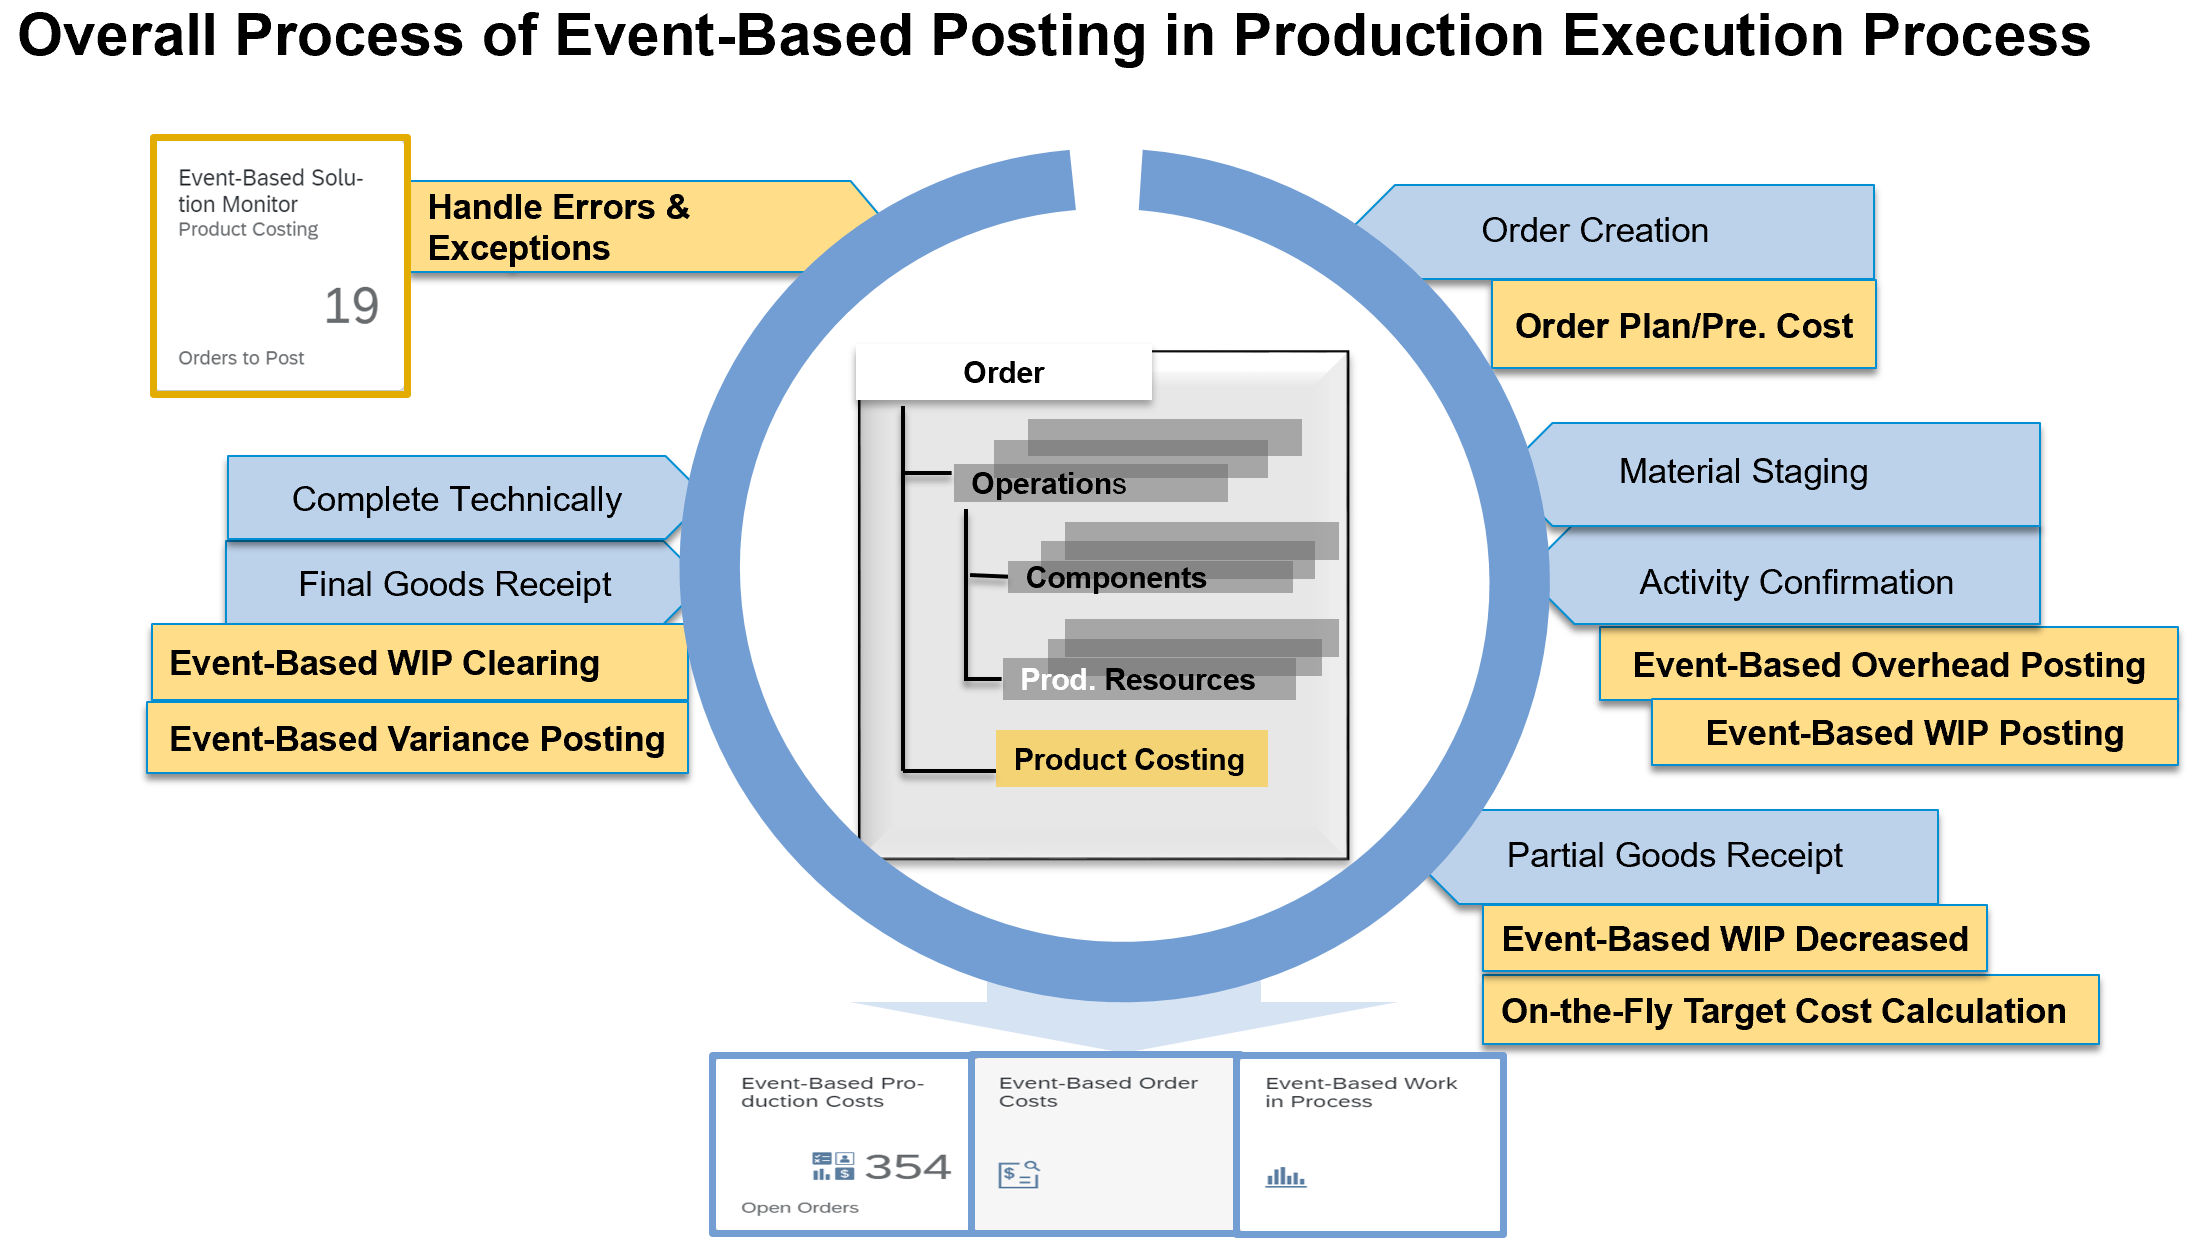 Pic%20%233%3A%20Overall%20Process%20of%20Event-Based%20Posting